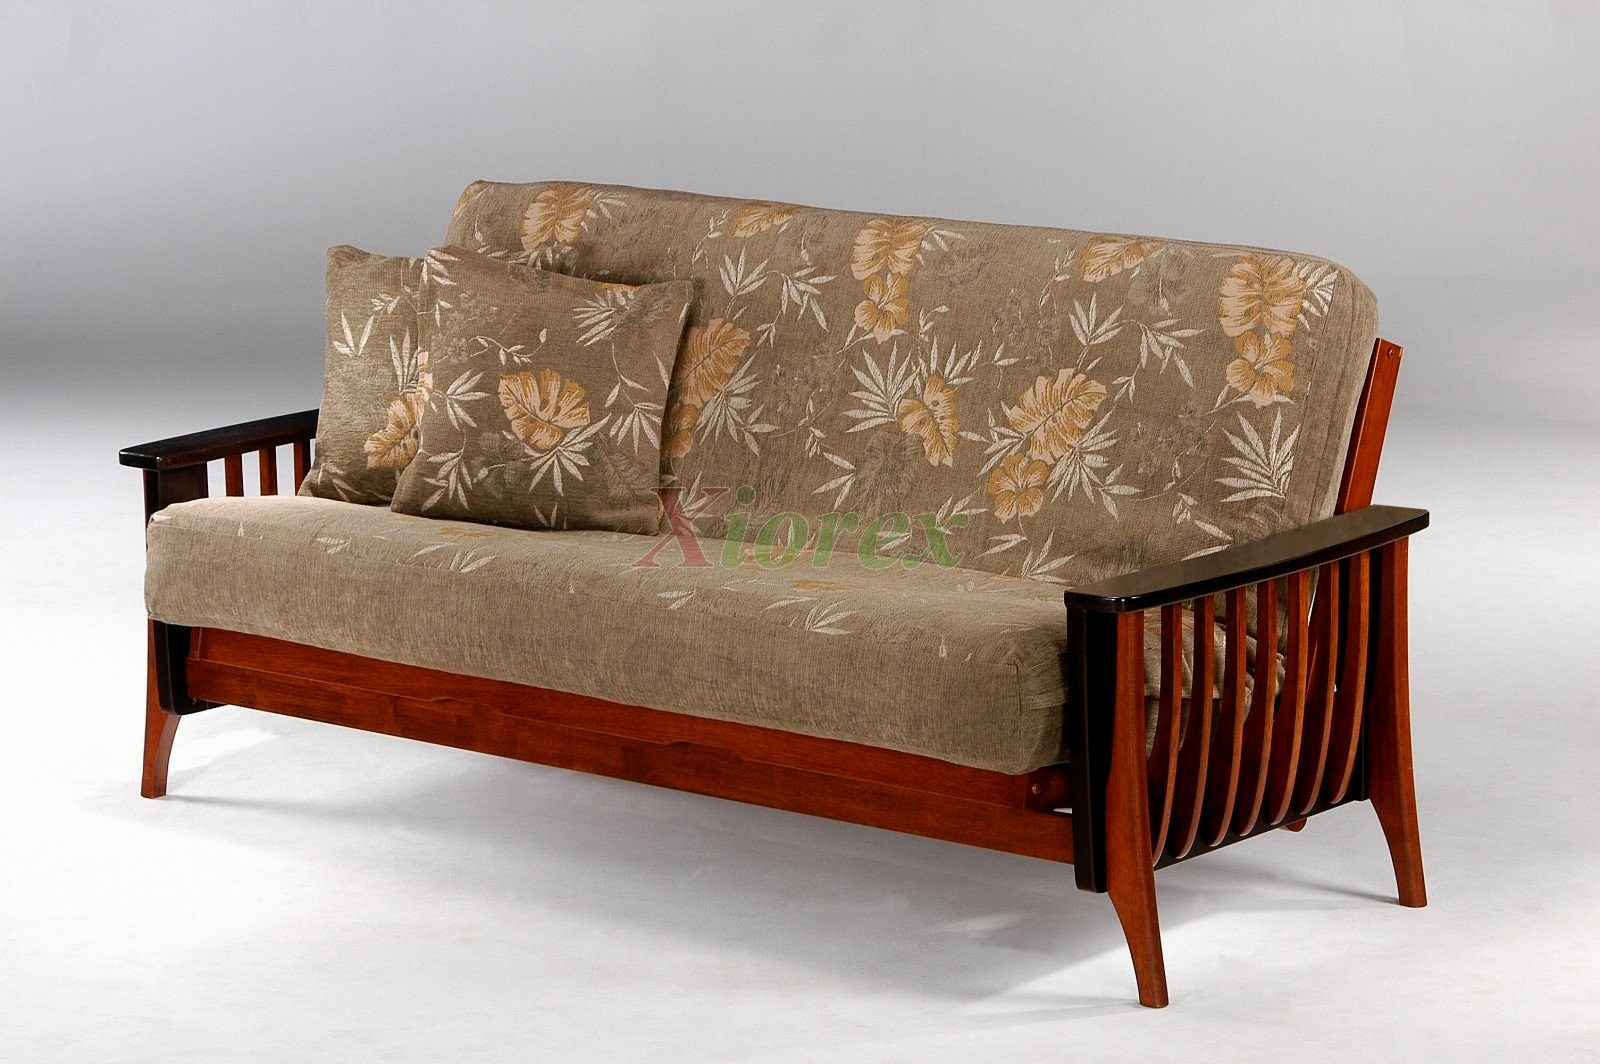 lovely futon sofa bed walmart décor-Superb Futon sofa Bed Walmart Wallpaper